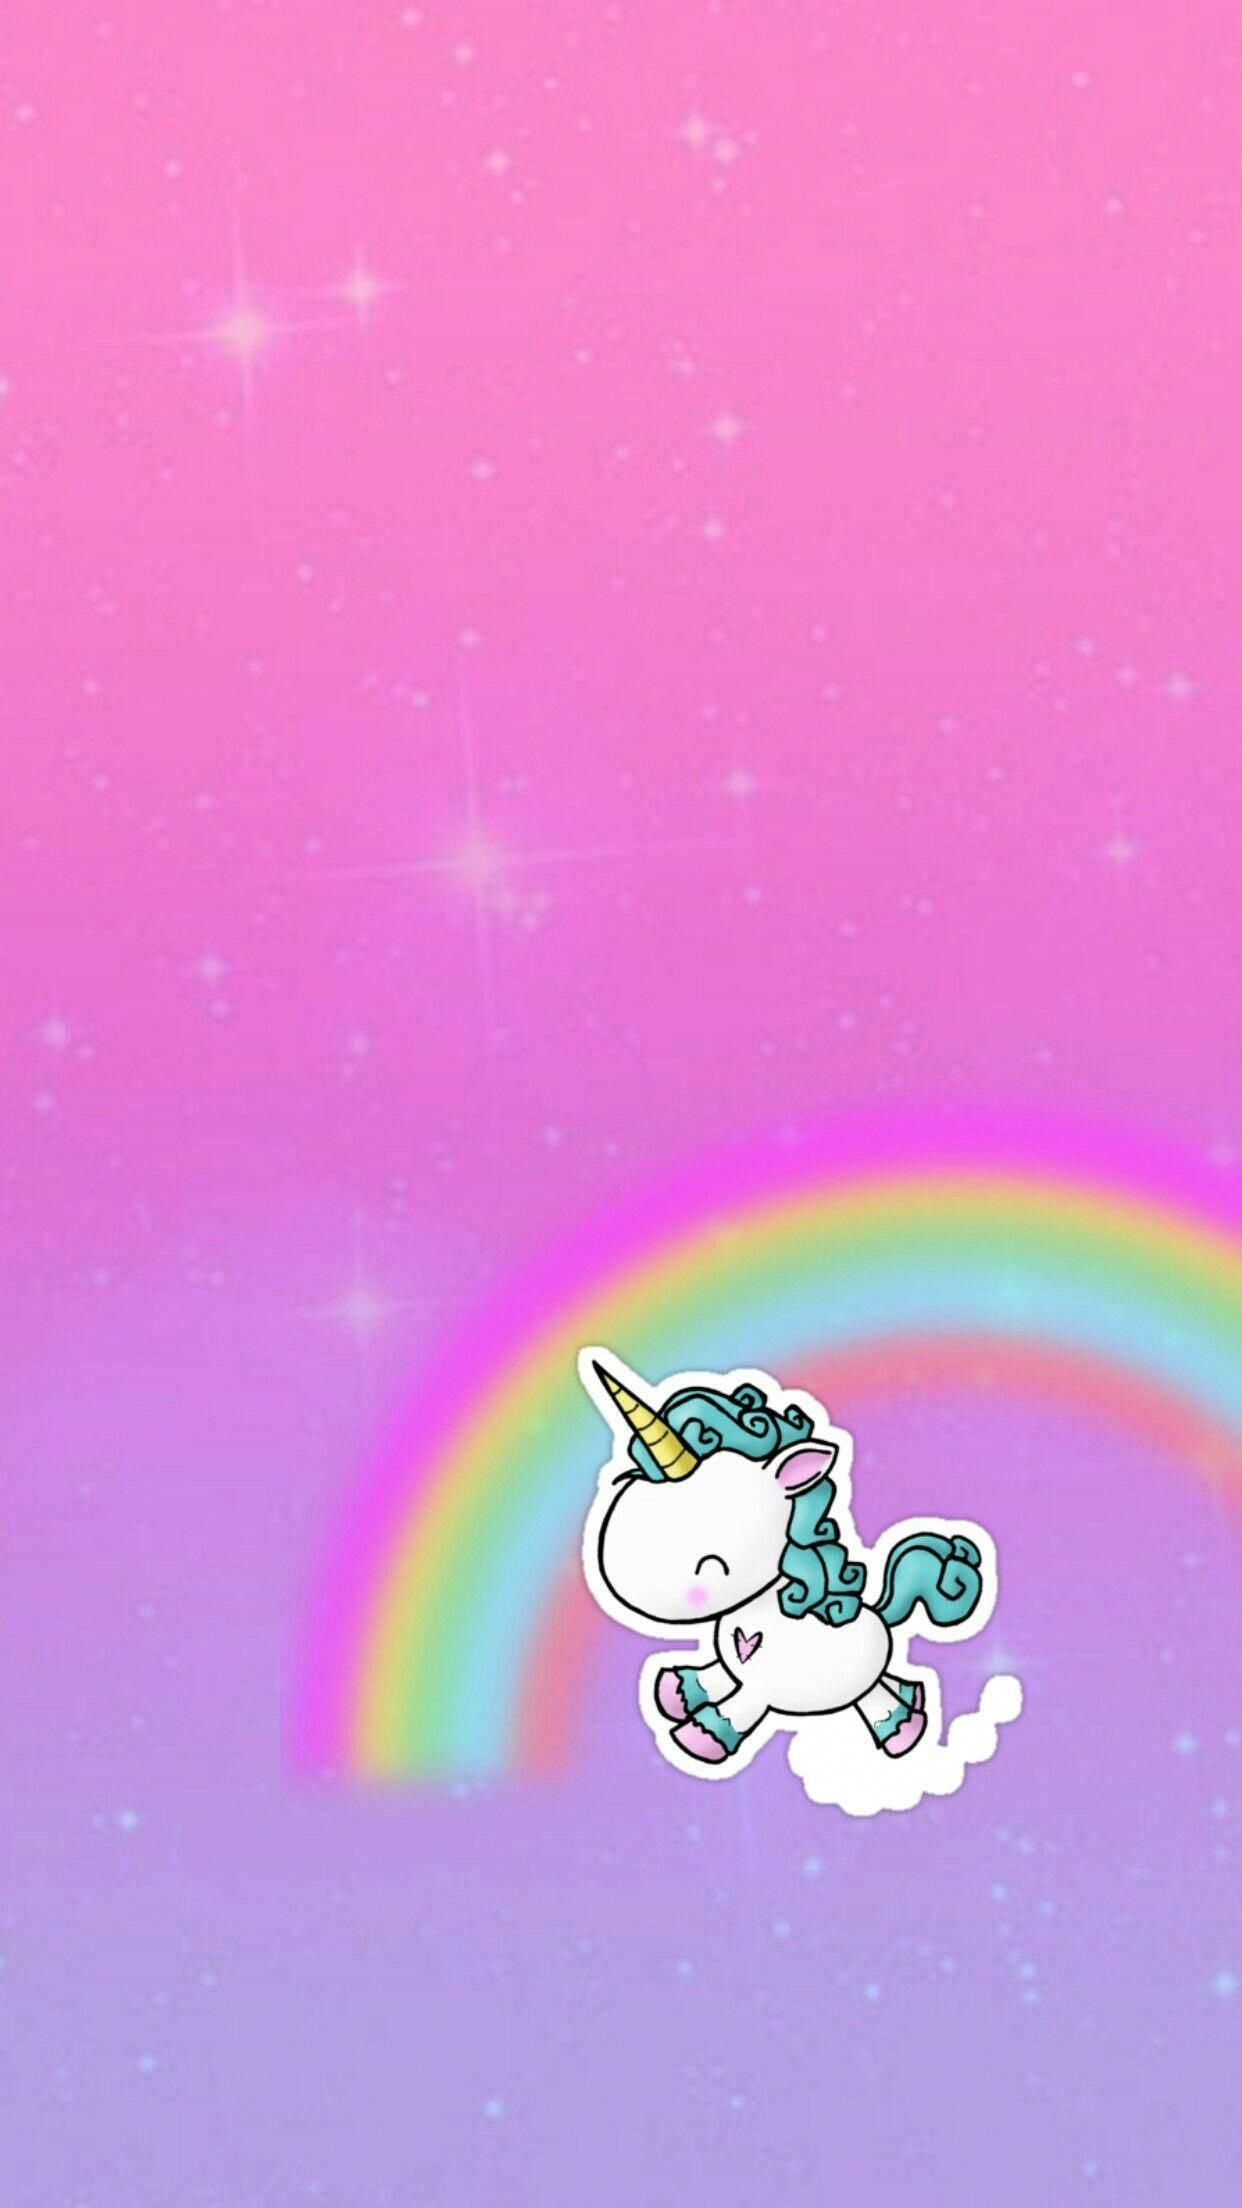 Galaxy Rainbow Unicorns Made By Me Purple Sparkly Wallpapers